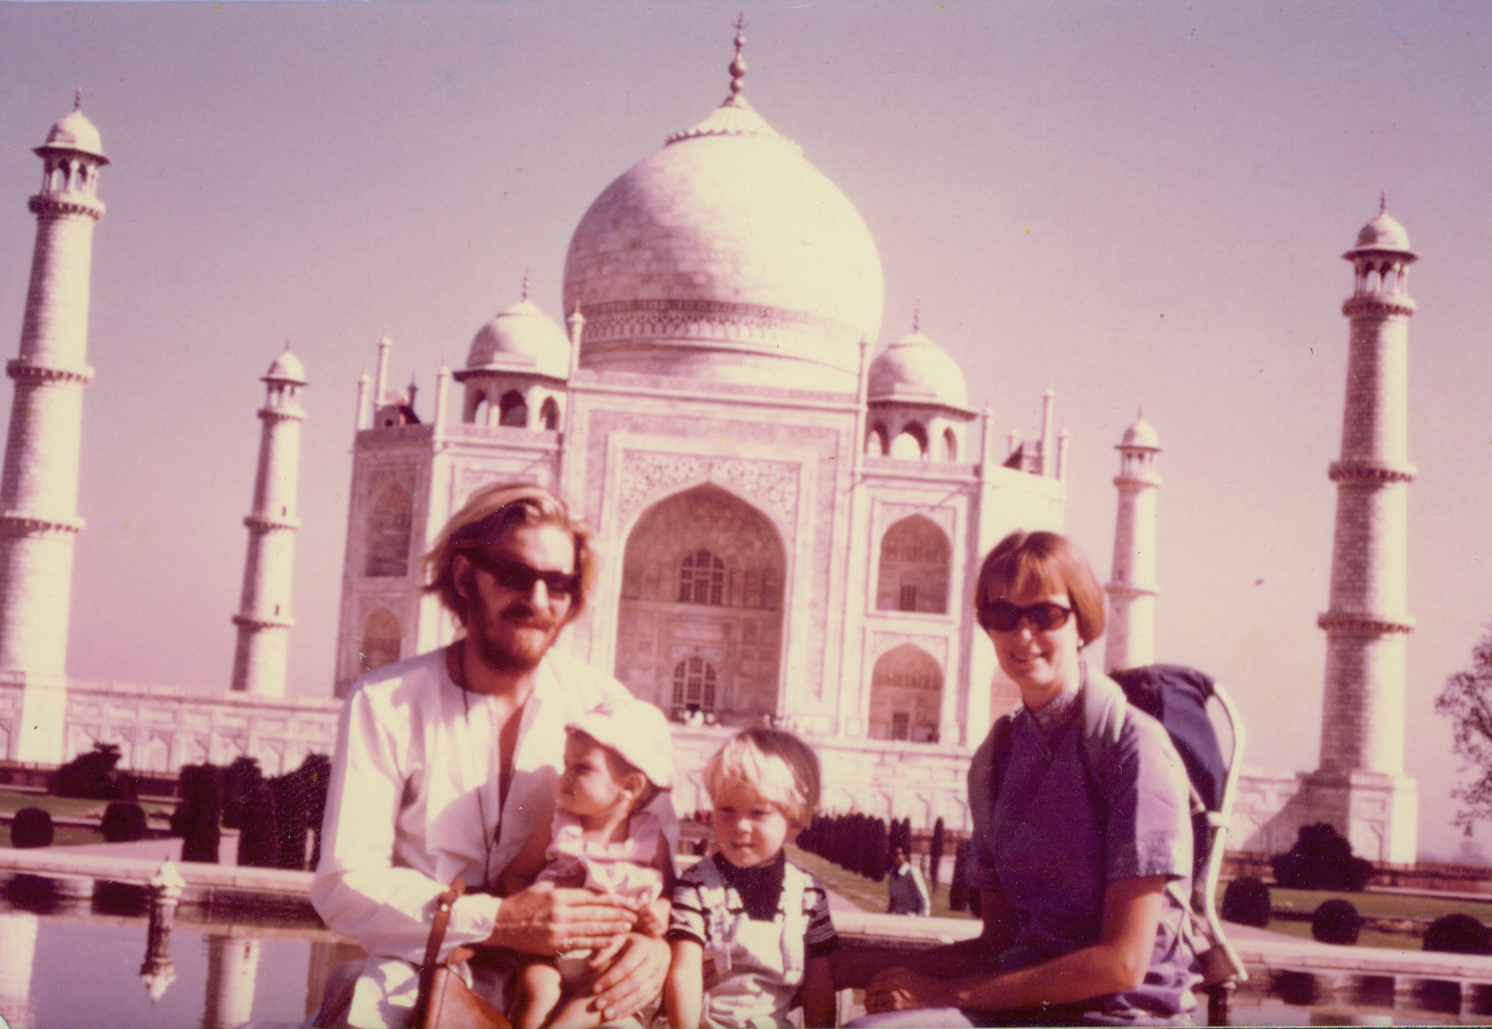 First family trip to India in 1971 with their children Uma and Ganden